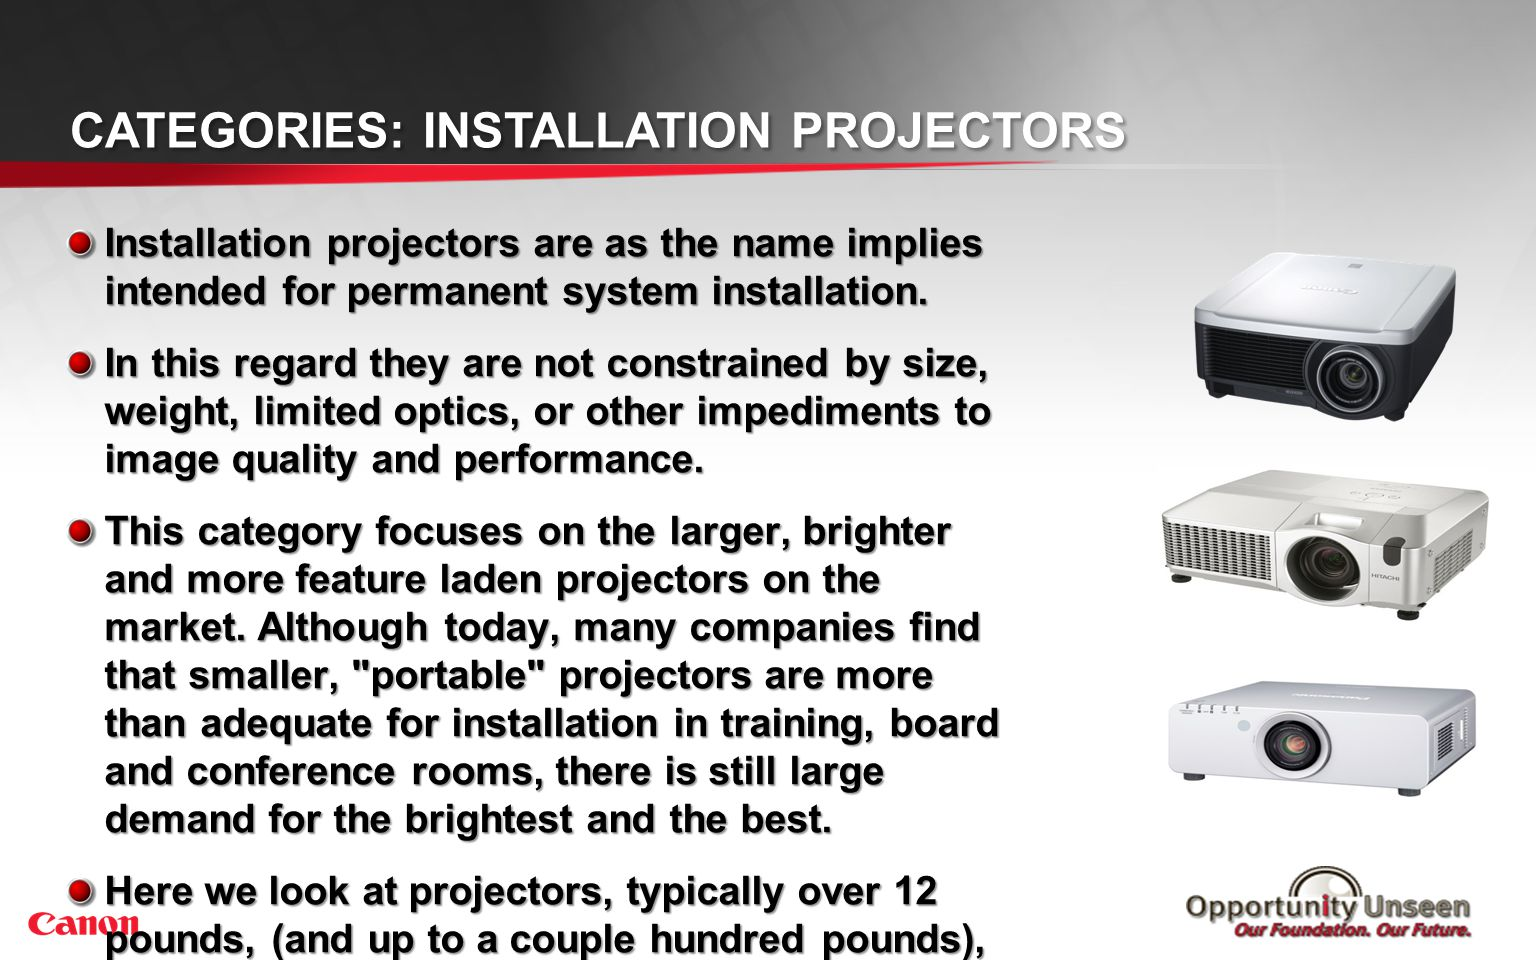 Categories: Large Venue Projectors